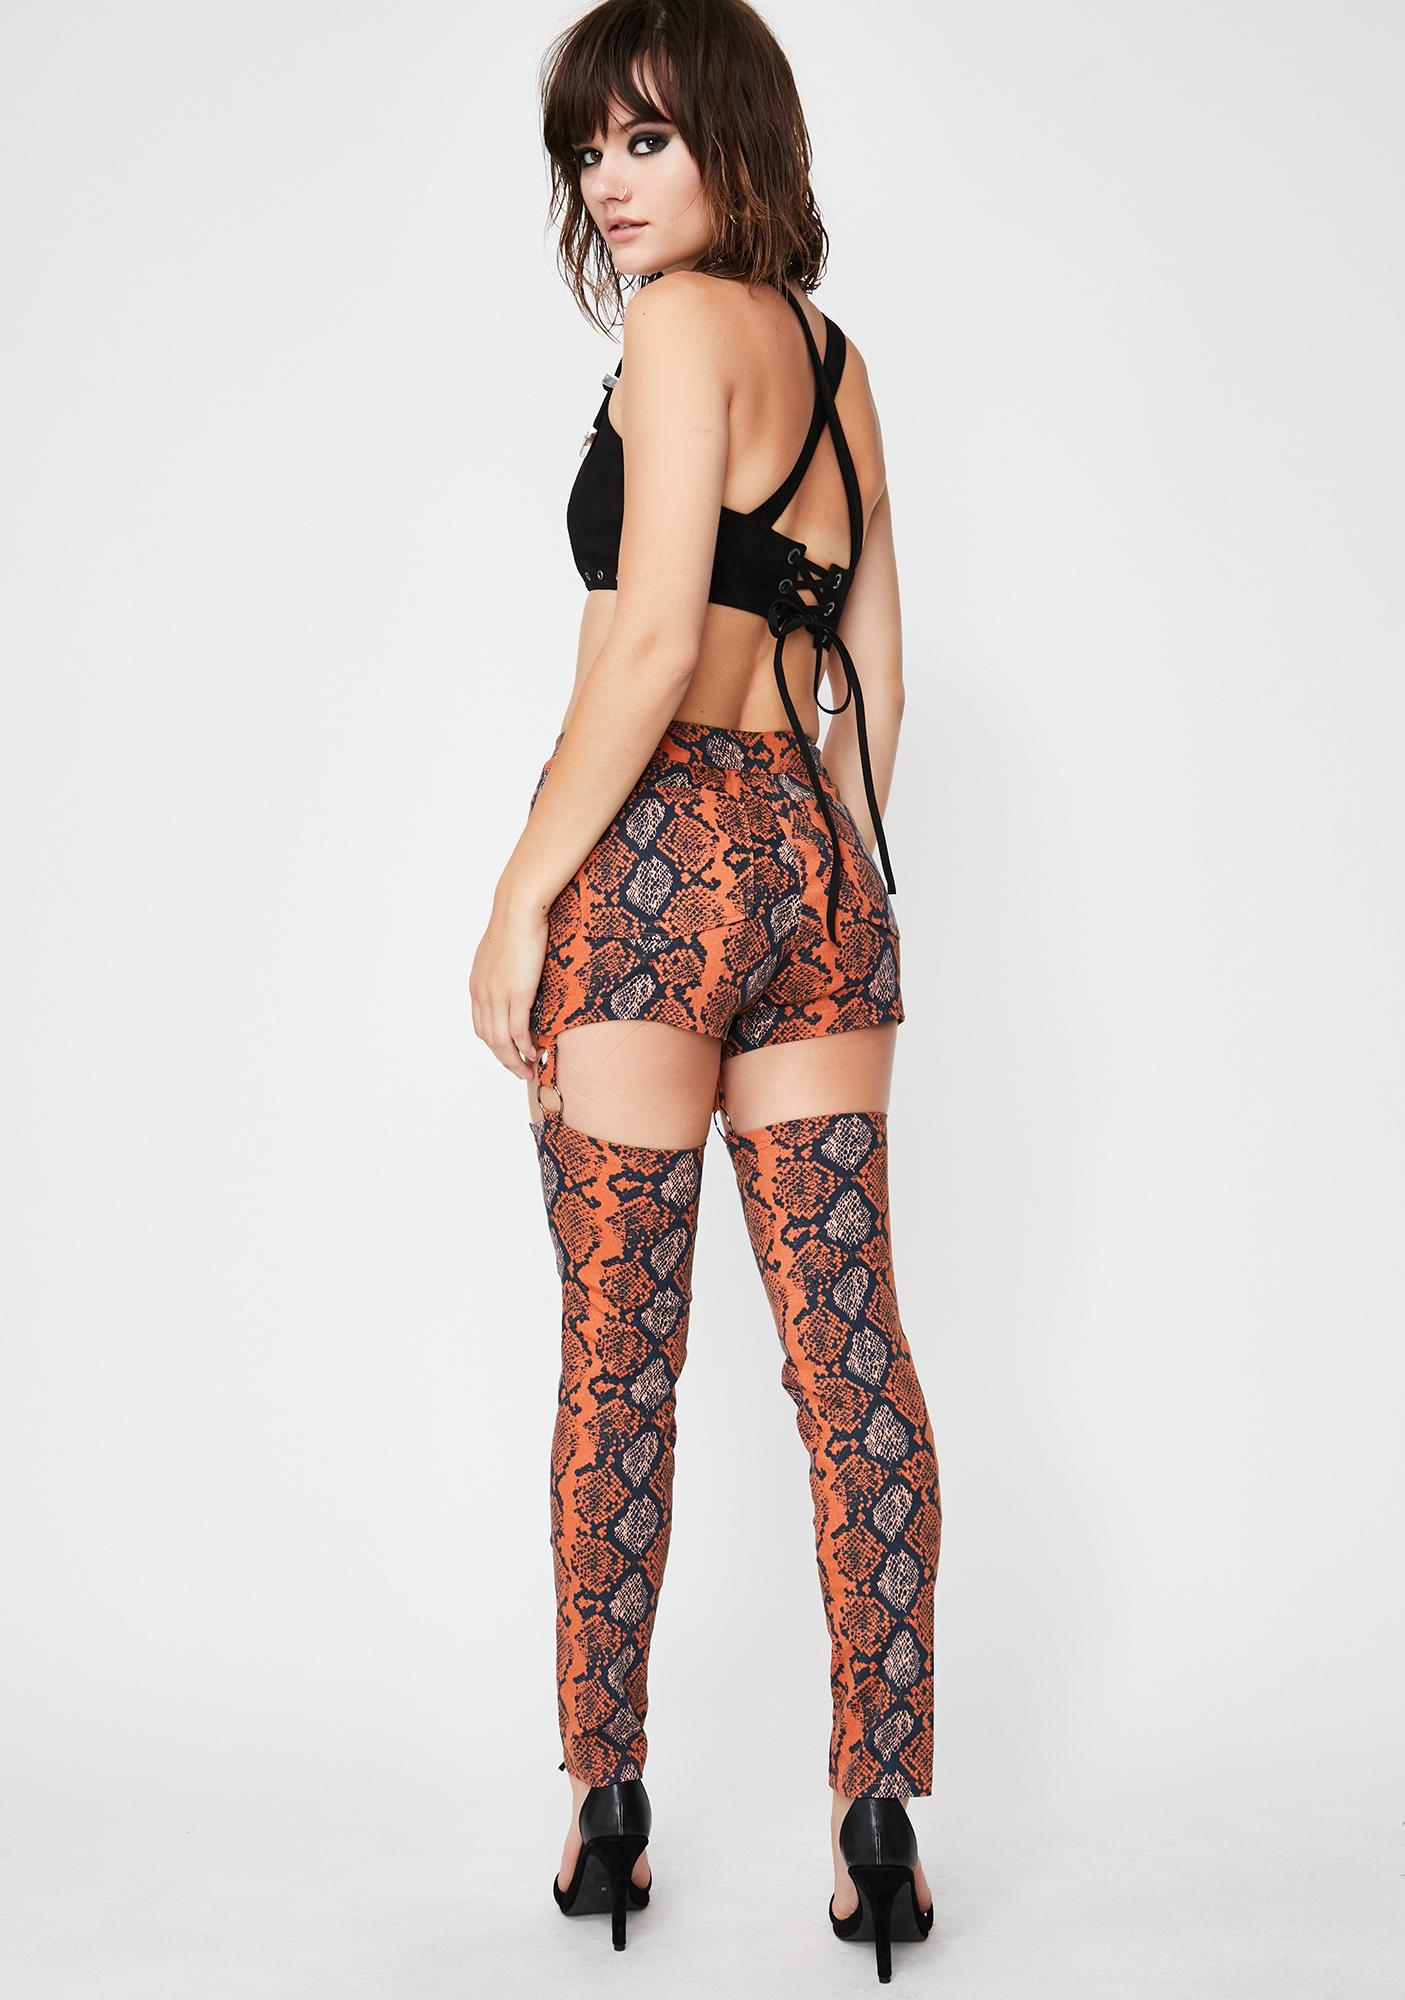 Deadly Dame Snakeskin Chaps